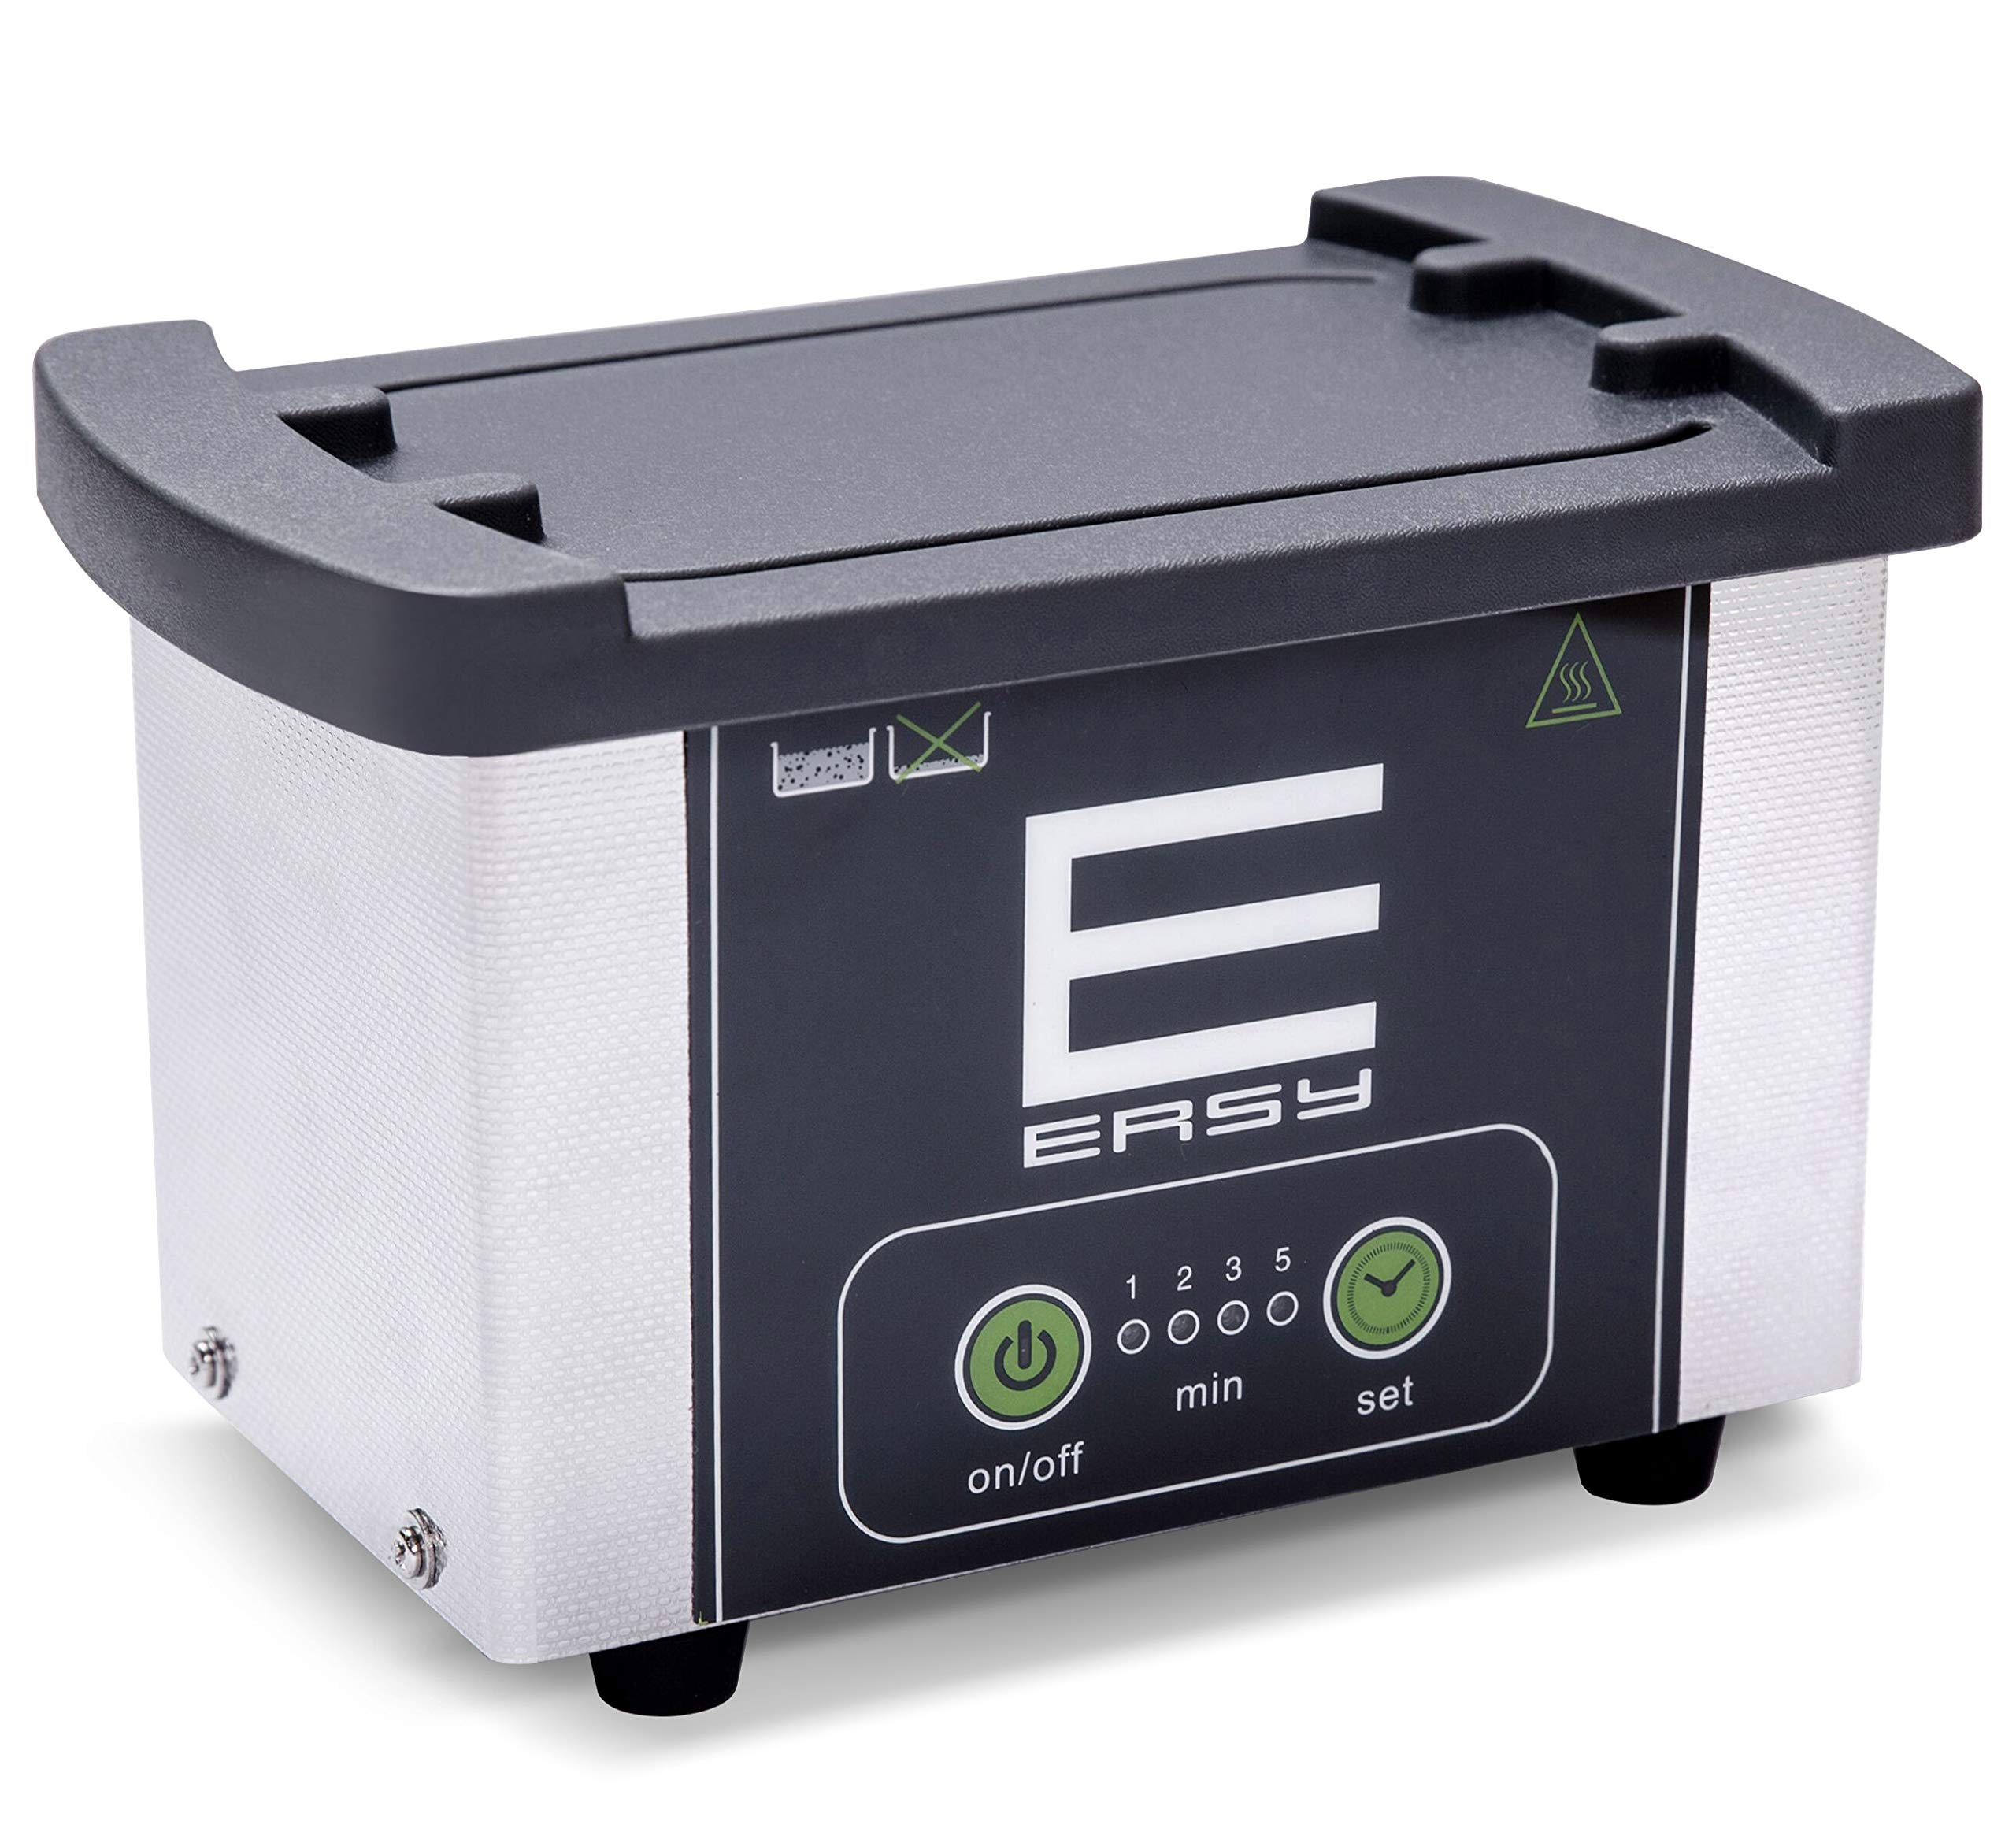 Ultrasonic Cleaner, Simple Operation Ultrasonic Eyeglasses Cleaner 23 Ounces(700ML) with DC 12 Volts Make More Safety, Stainless Tank for Cleaning Jewelry, Dentures, Toys by EERSY (Image #1)